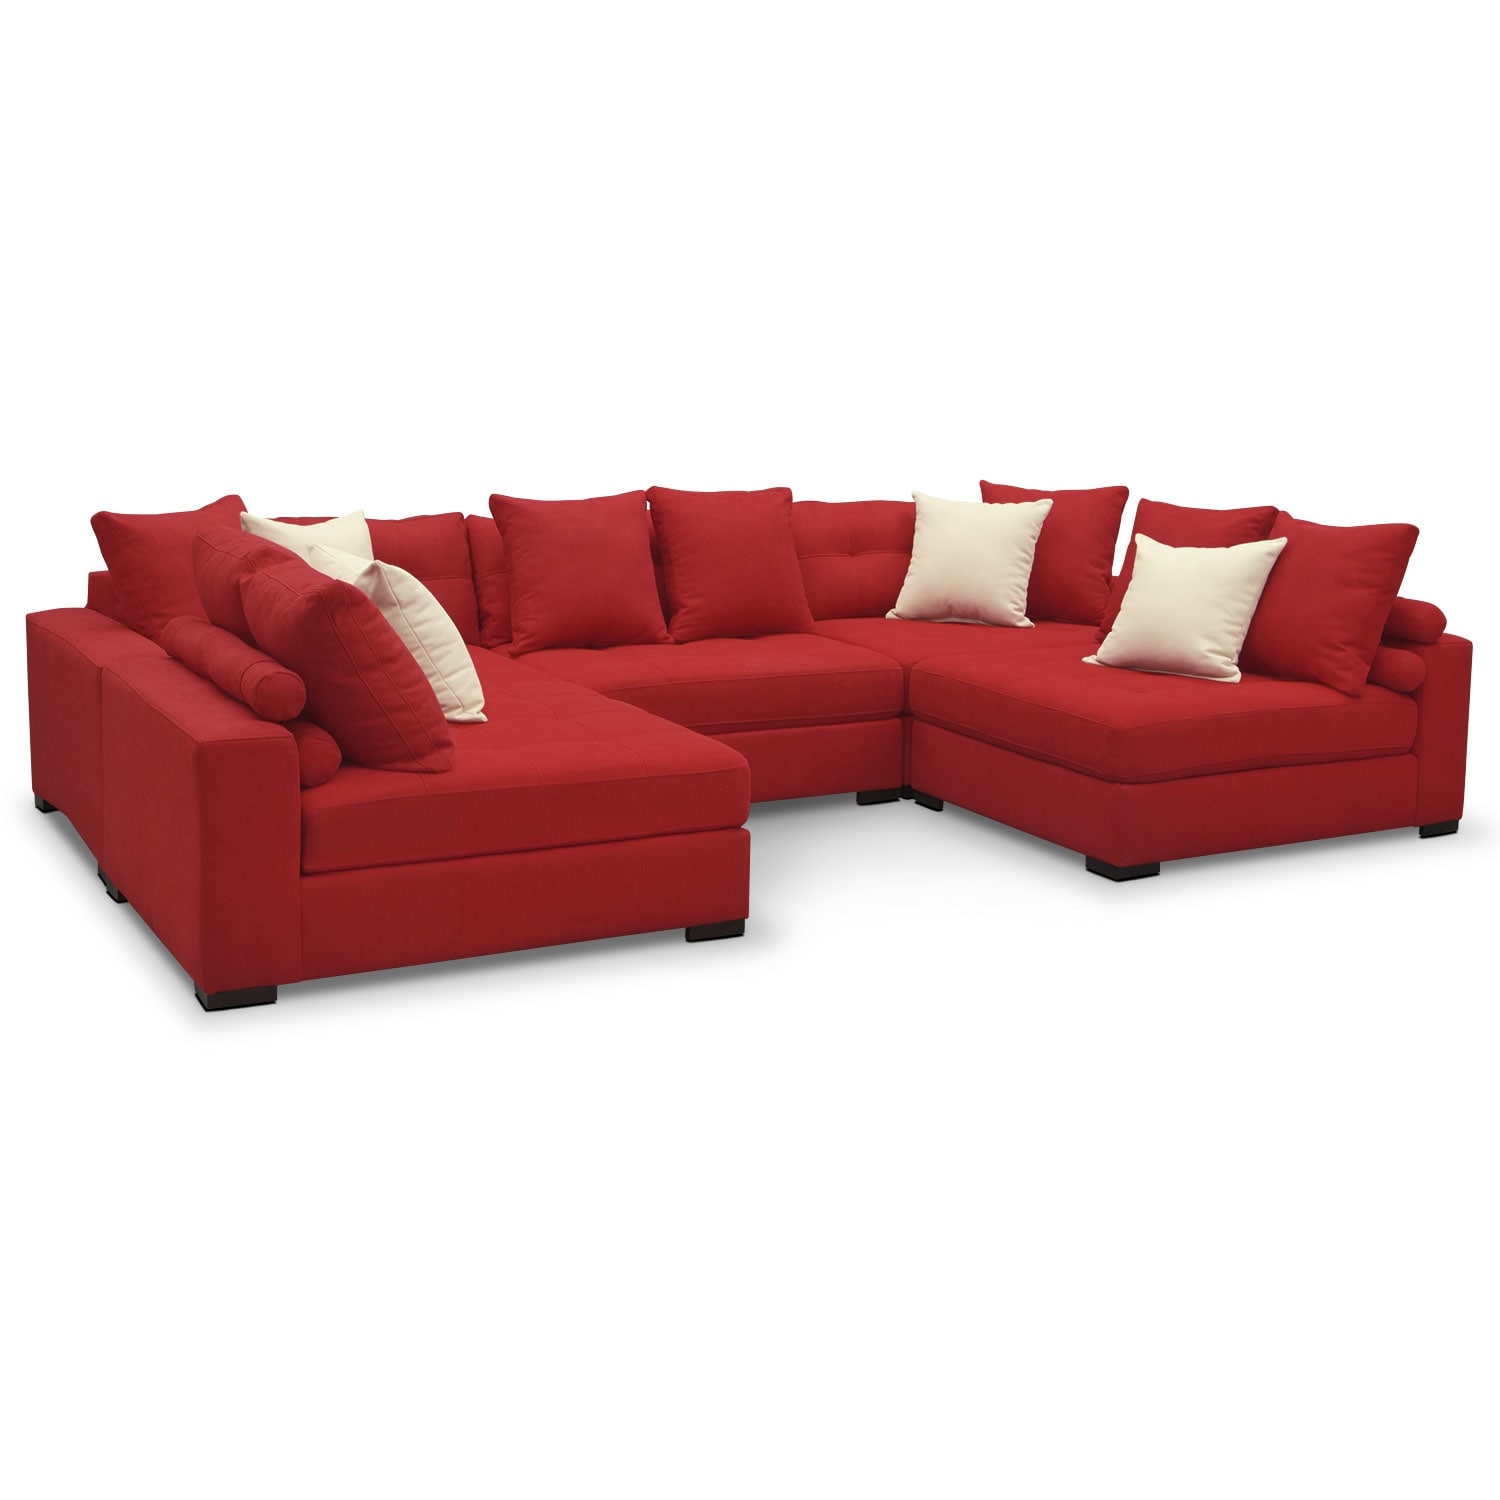 Venti 5 Piece Sectional Red Value City Furniture